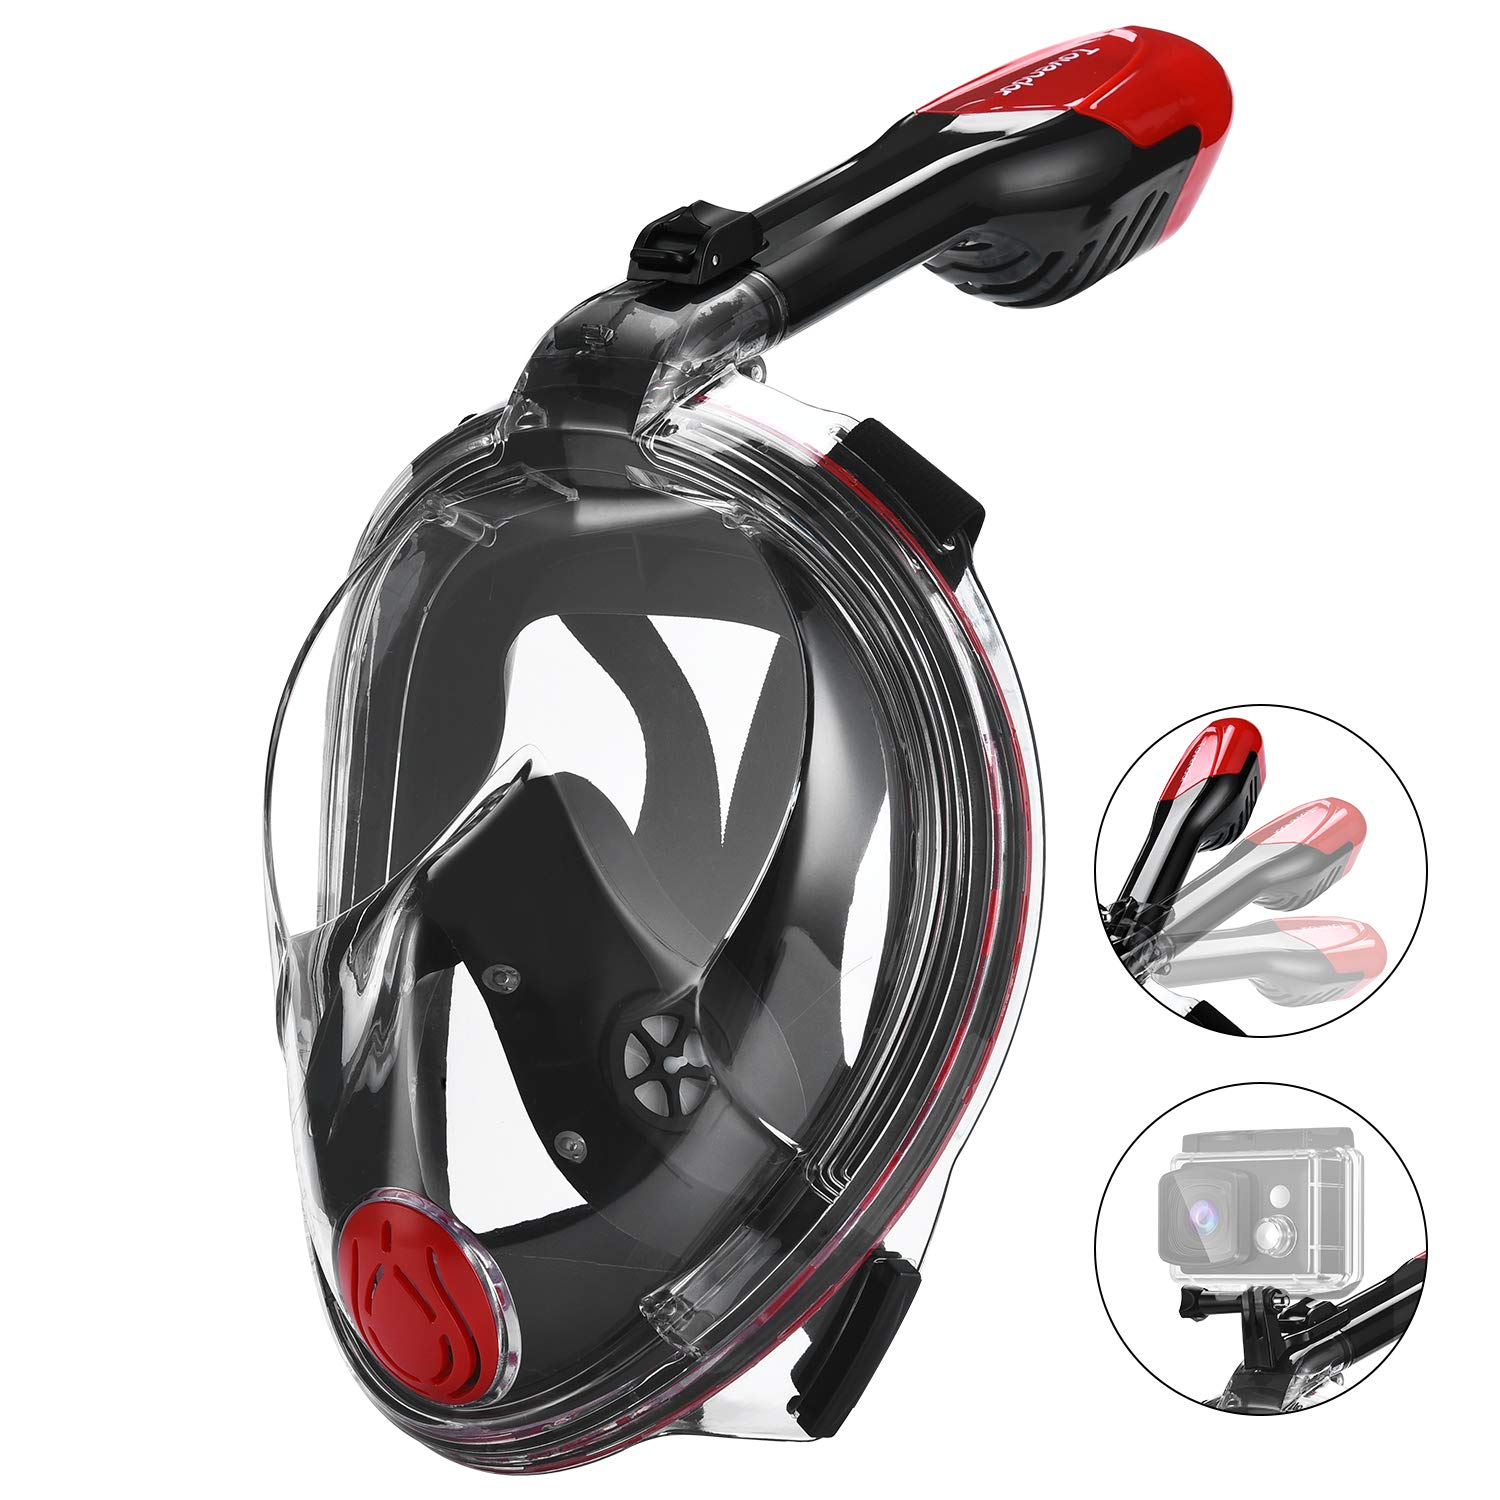 Tovendor Full Face Snorkel Mask for Adults, 180° Panoramic View Scuba Diving Mask with Detachable Mount for Gopro, Easy Breath Anti-Fog Anti-Leak (Red&Black, L/XL) by Tovendor